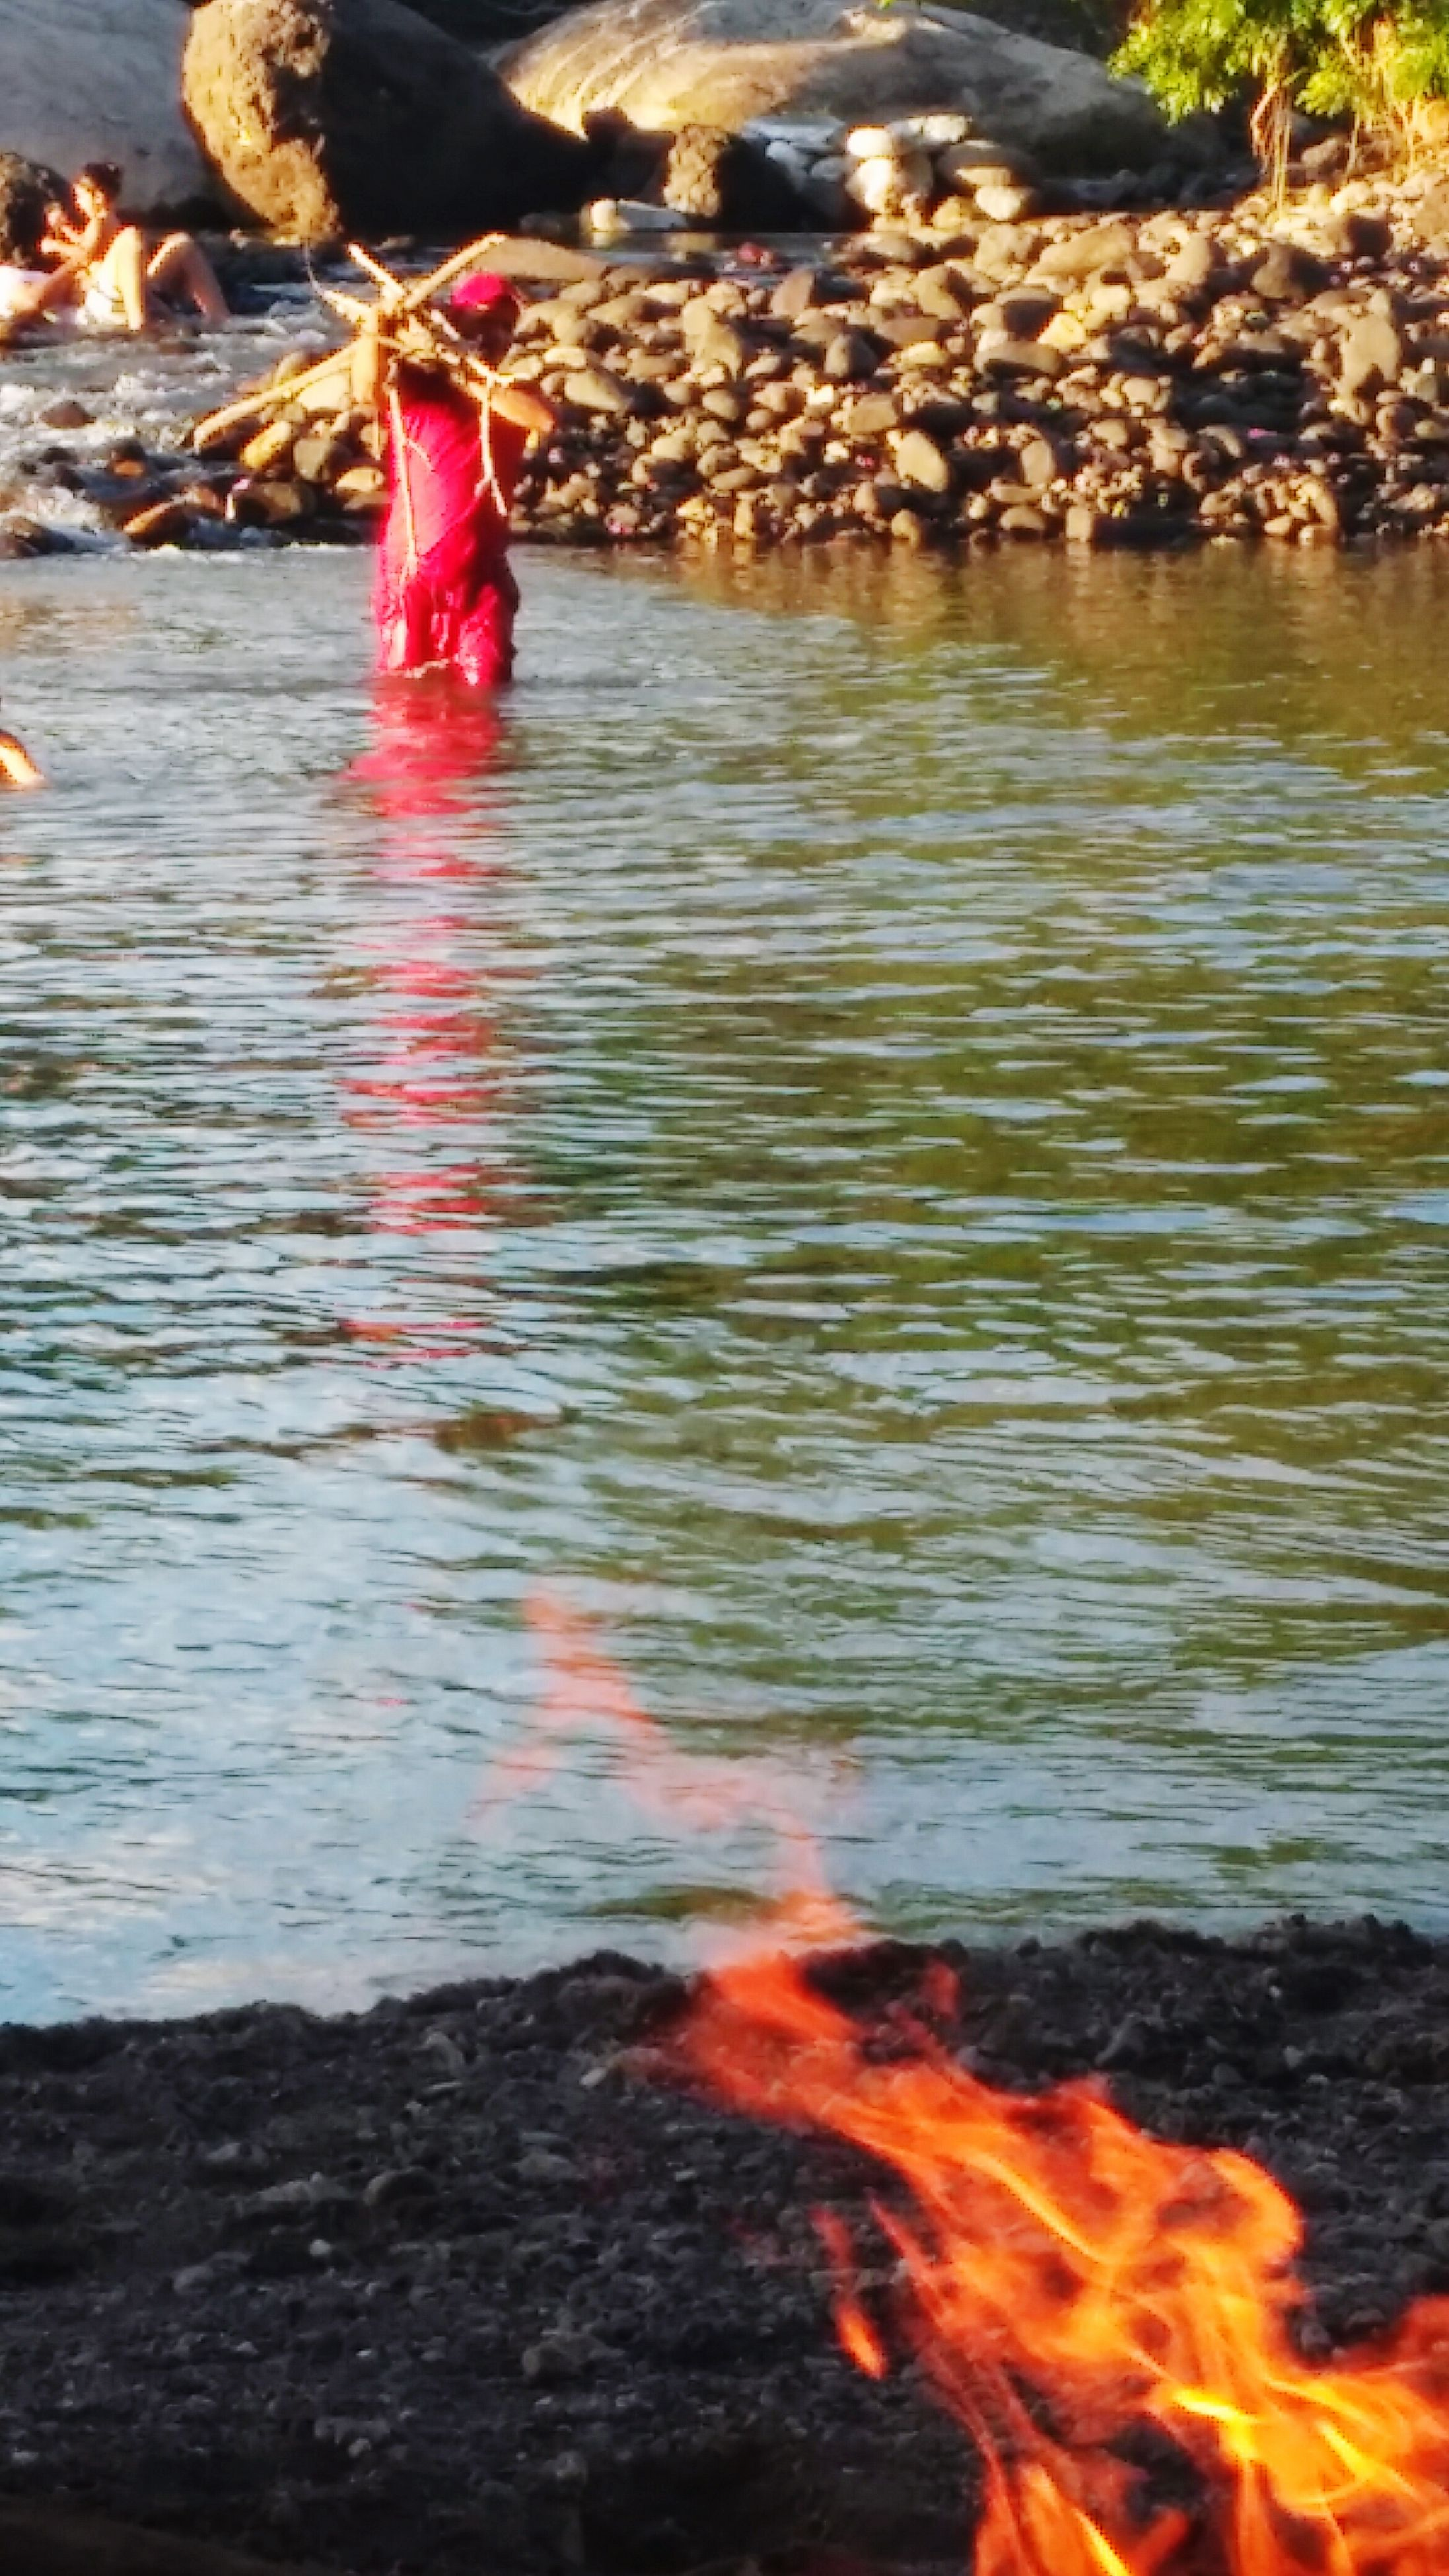 water, lifestyles, leisure activity, motion, men, rippled, lake, outdoors, waterfront, reflection, river, nature, sunlight, orange color, pond, day, swimming, splashing